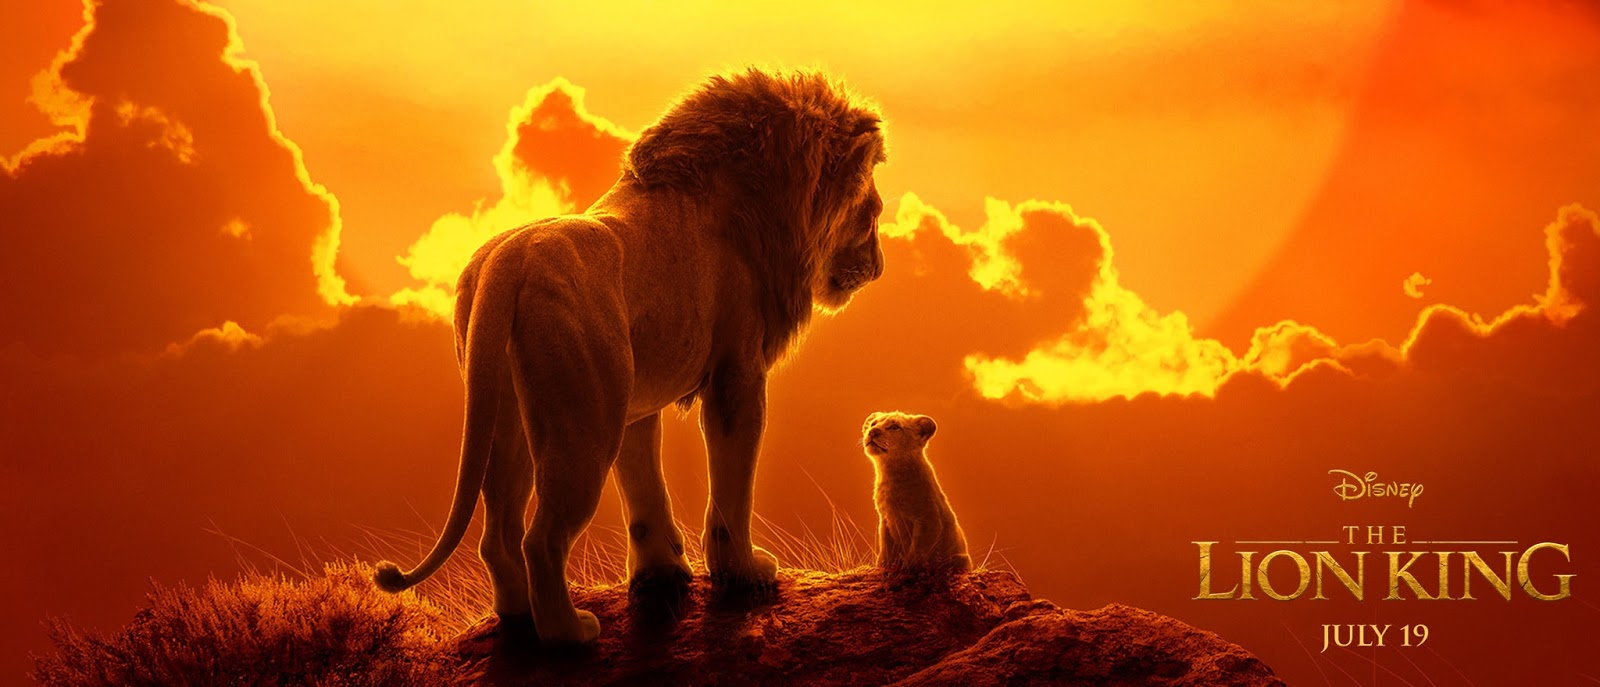 The Lion King Review 3 Movierulz